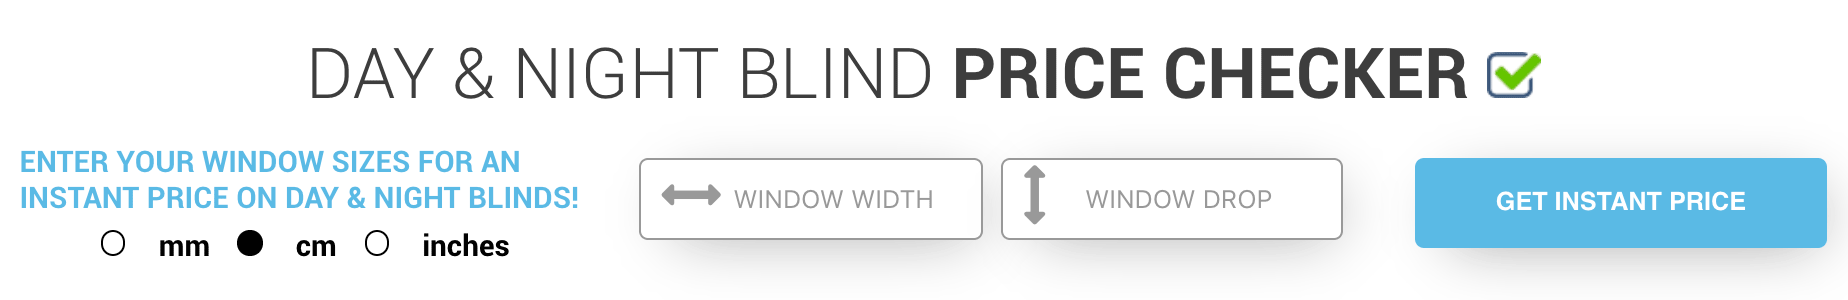 Day and Night Blind Price Checker